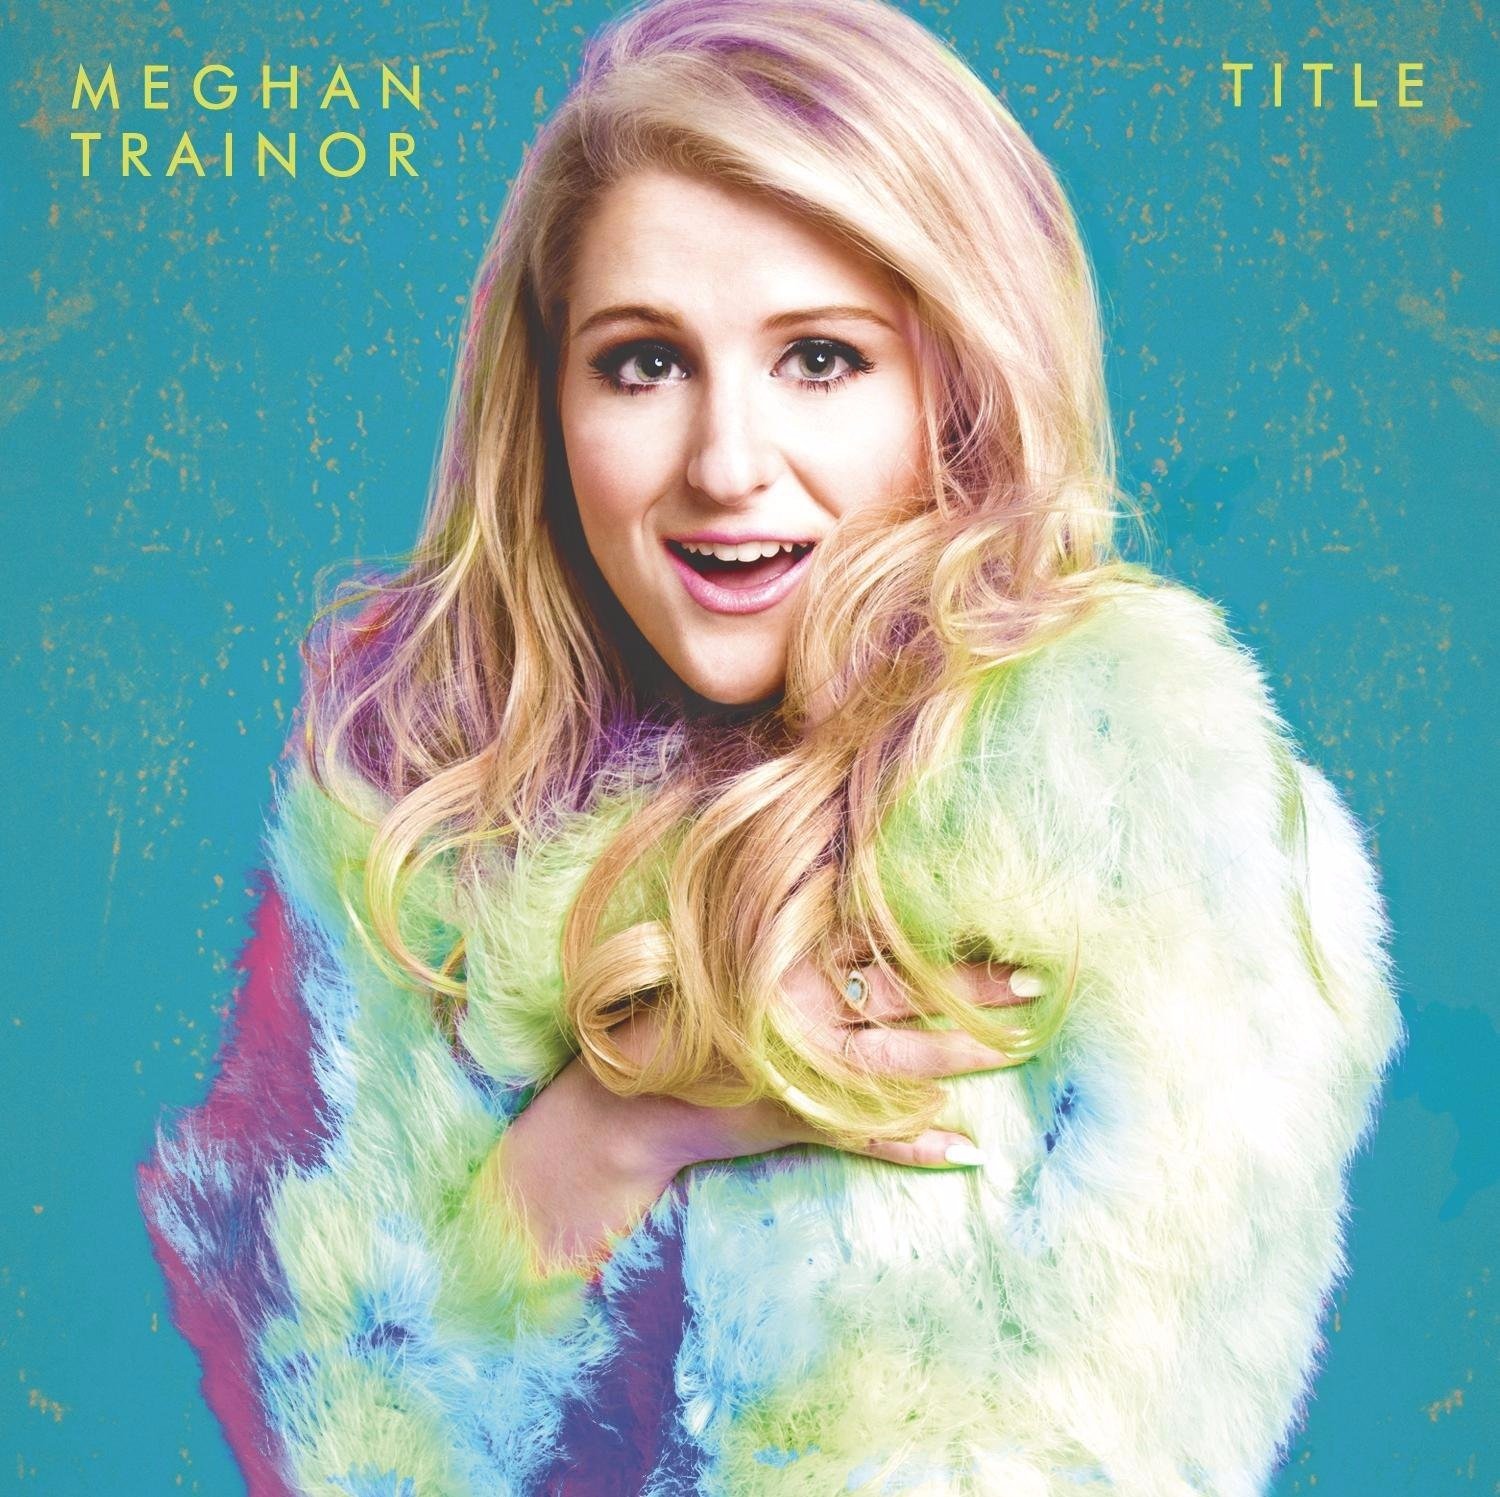 Meghan Trainor's album Title helped Meghan get a widespread recognition. The album released on 9th January, 2015.